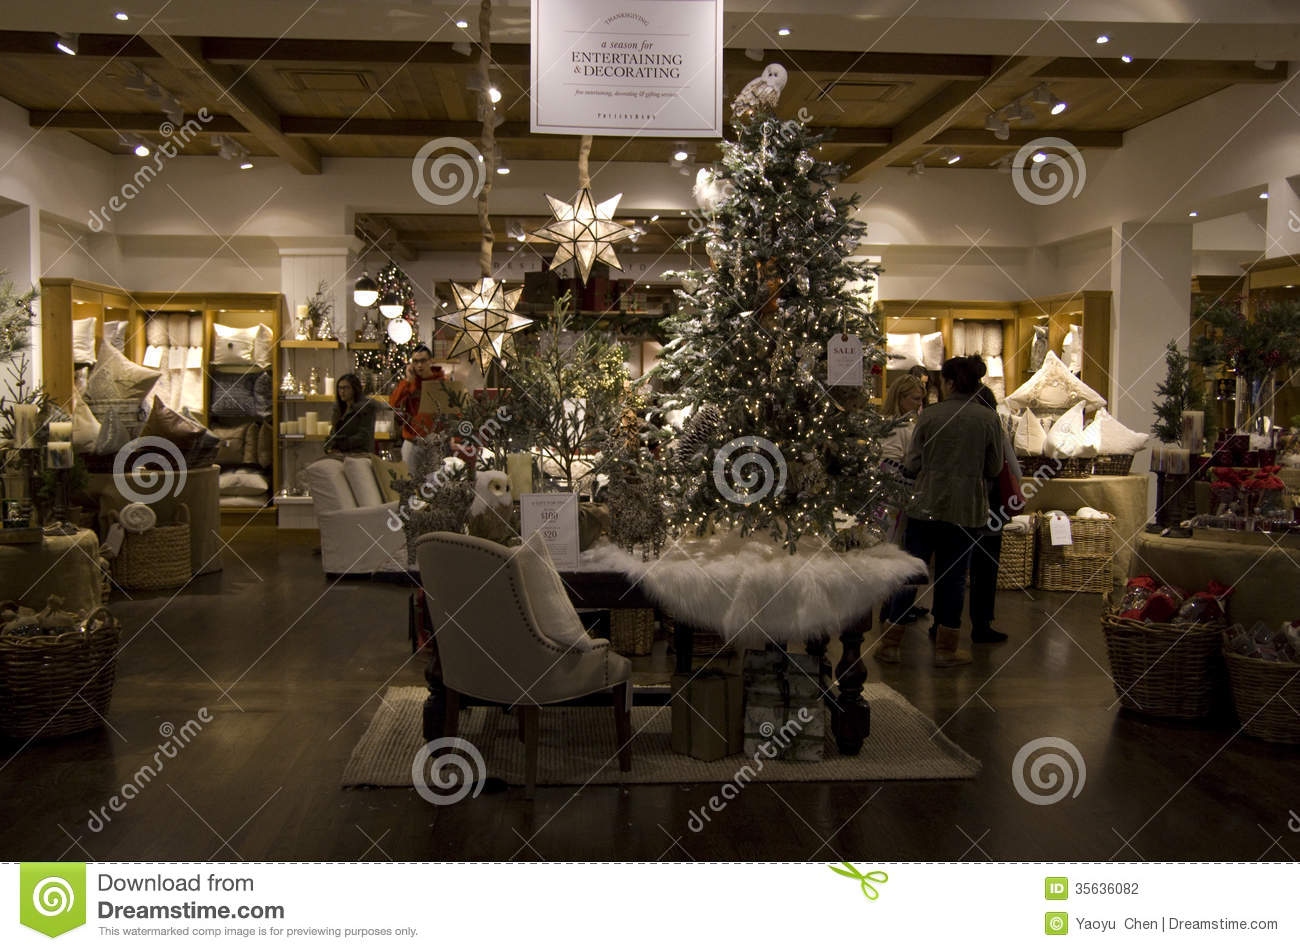 Christmas Trees Home Goods Store Editorial Photography Image Of Furniture Christmas 35636082